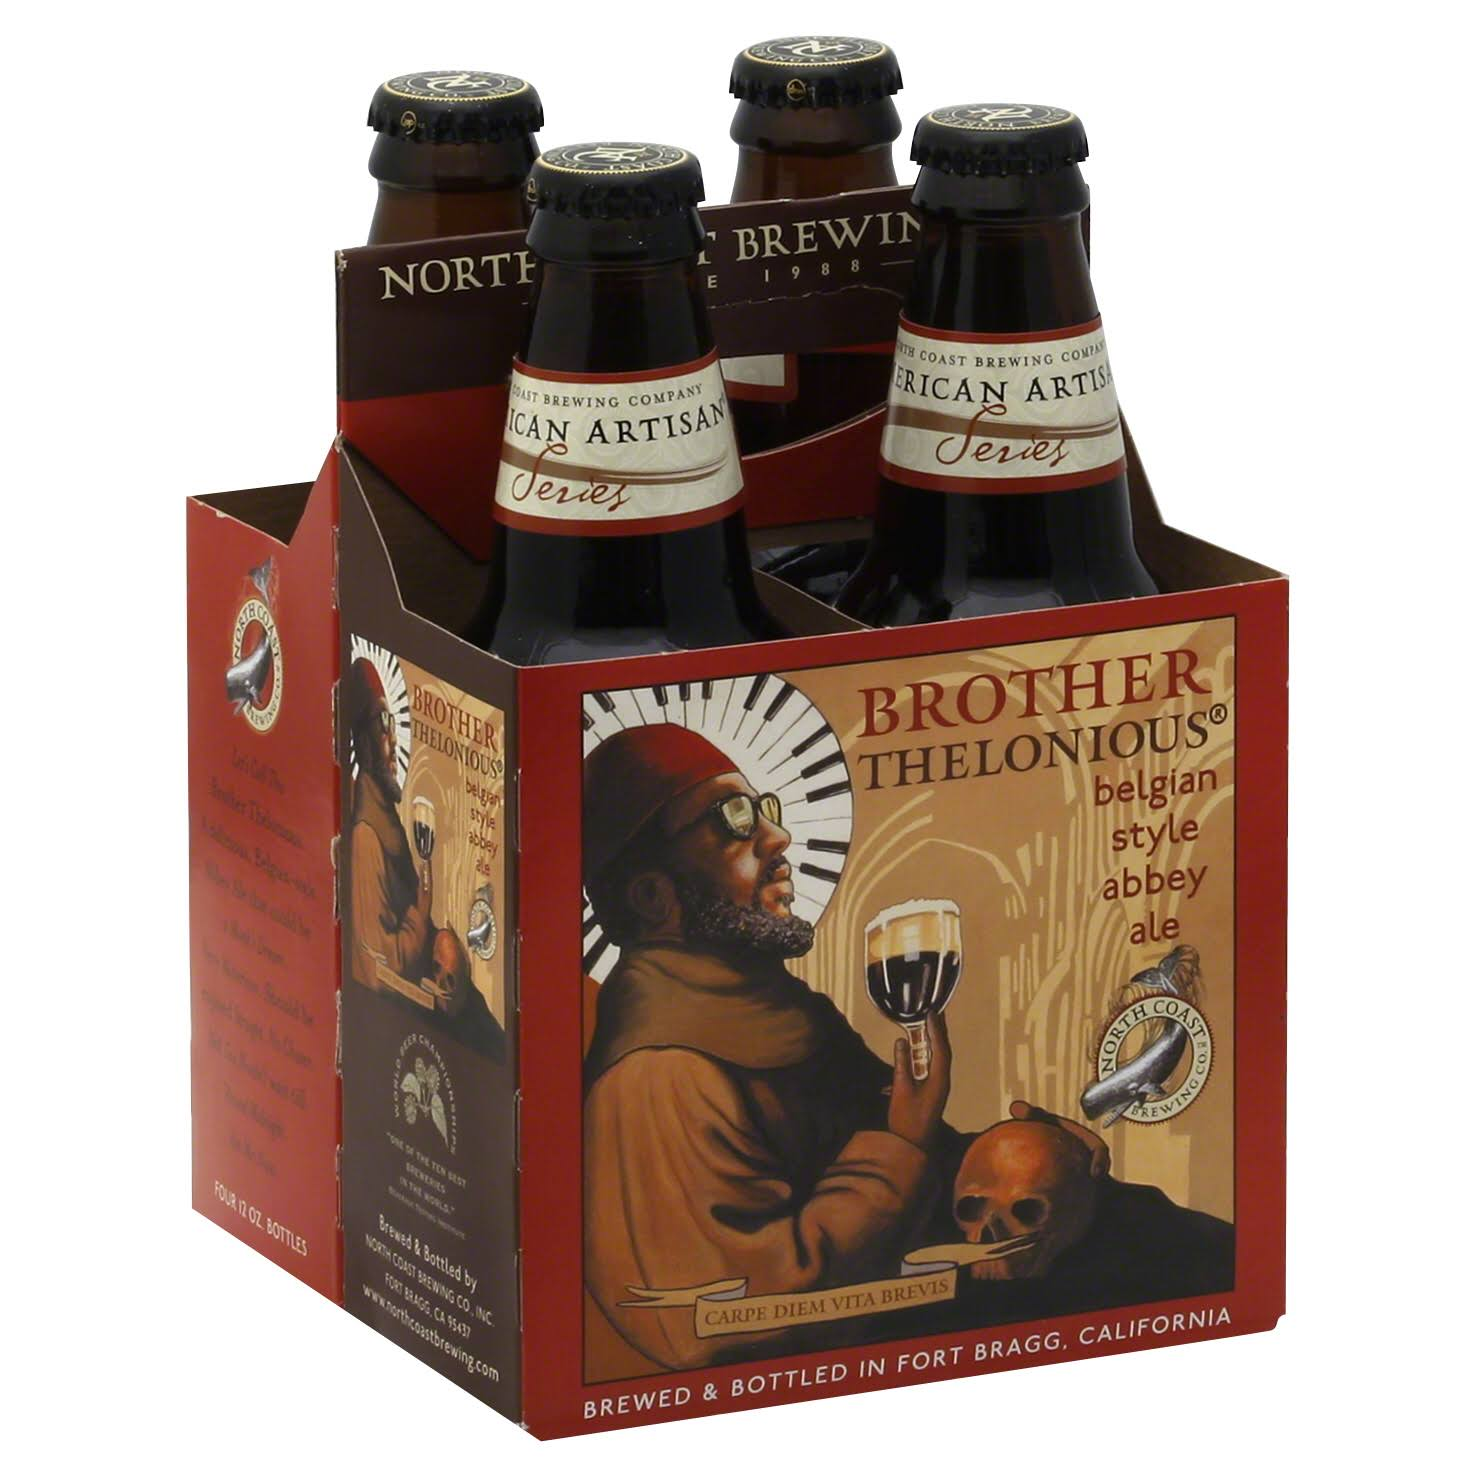 North Coast Brewing Ale, Abbey, Belgian Style - 4 pack, 12 oz bottles